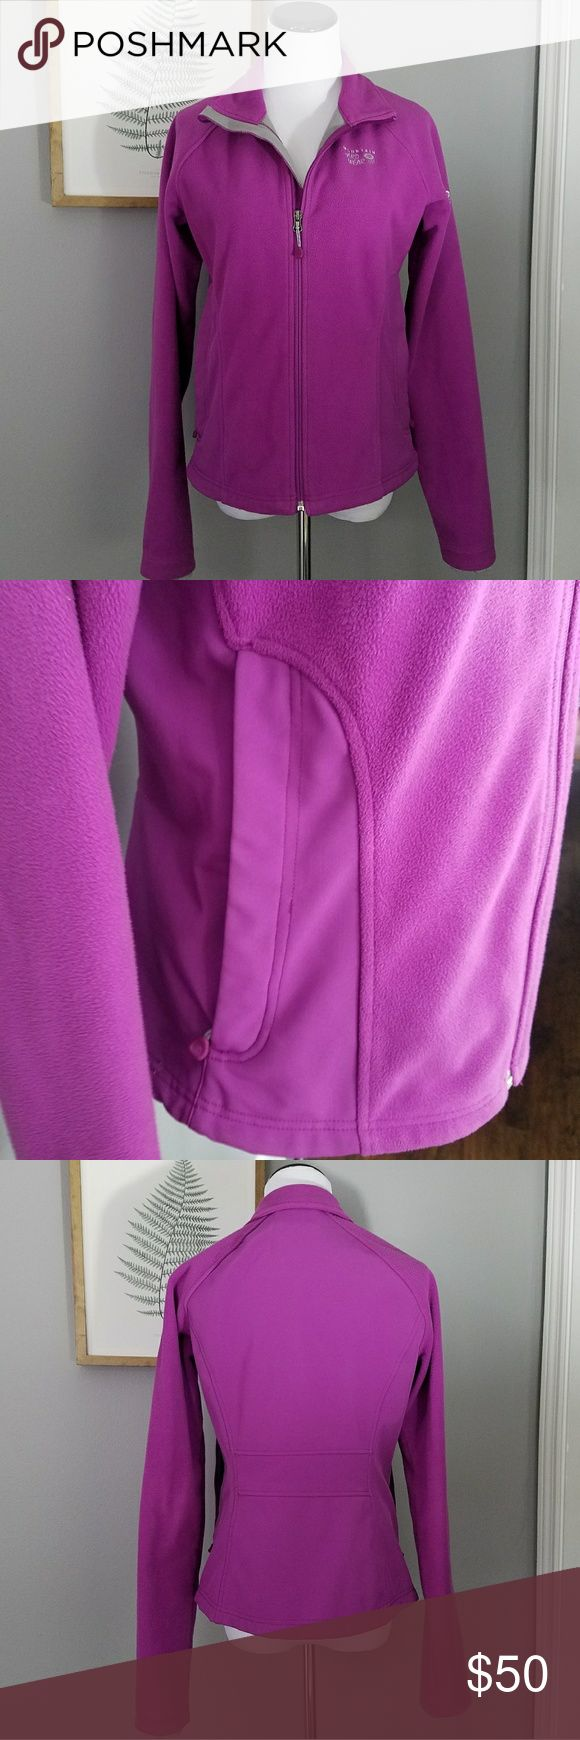 Mountain Hardwear Windstopper Purple Fleece Jacket Light purple fleece jacket with windproof material. Water resistant exterior. Very warm without the bulk of a full coat. Length is 23 in. 18 inch pit to pit. Sleeve length from armpit is 23.5 in. Good preowned condition. Mountain Hardwear Jackets & Coats